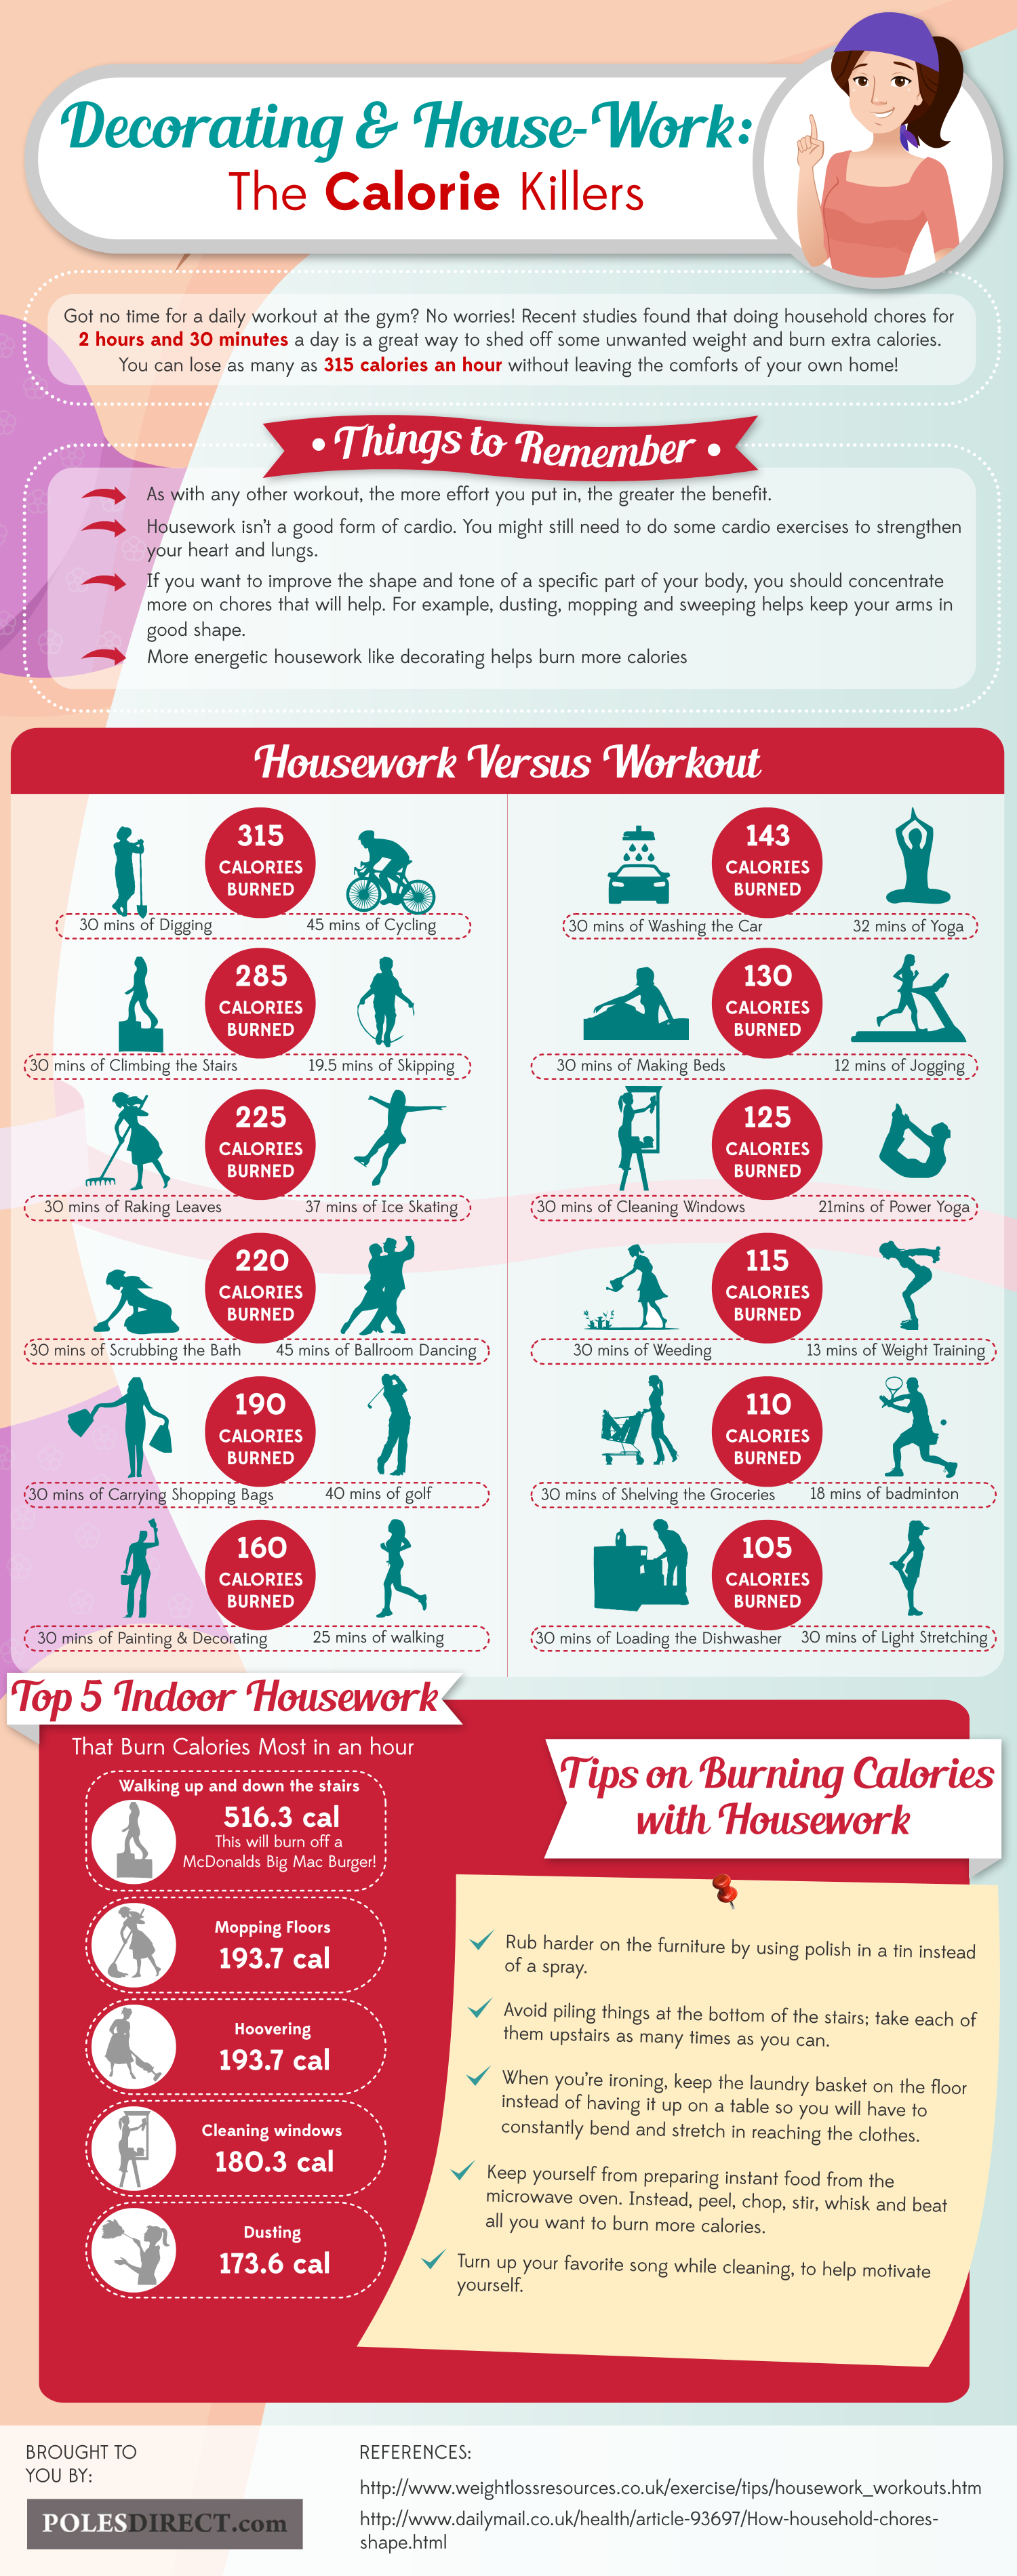 Decorating & House-Work: The Calorie Killers Infographic